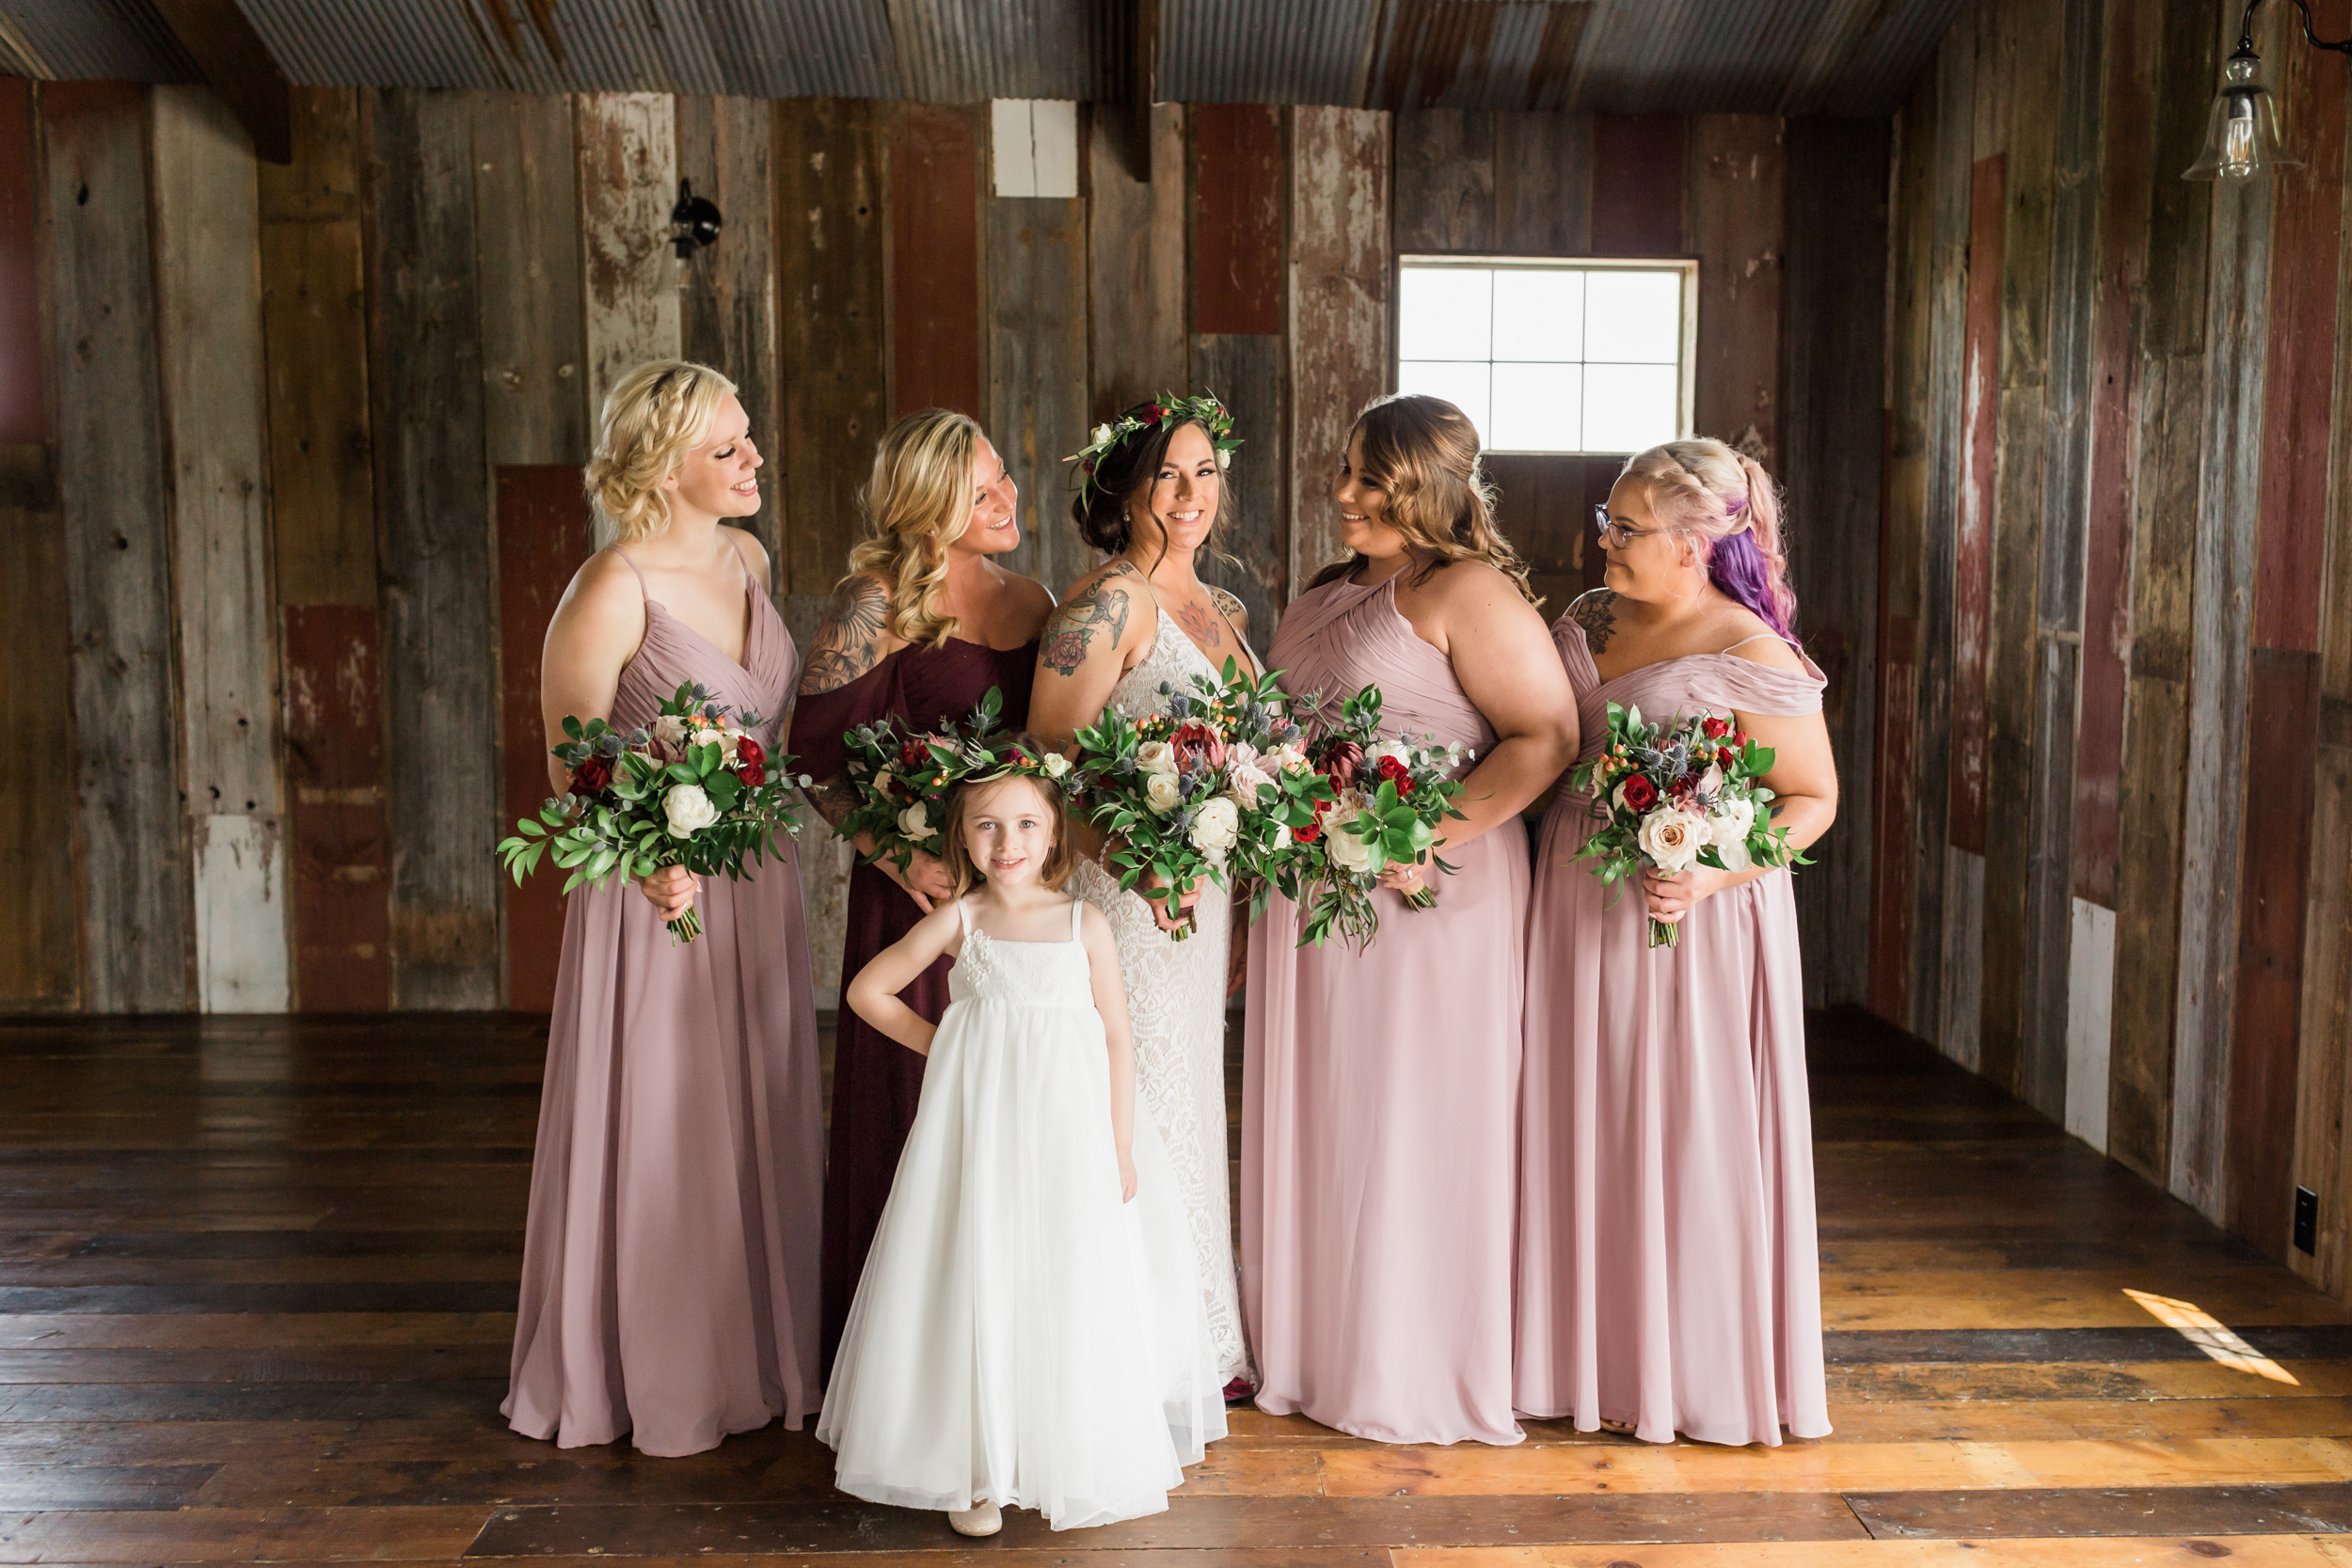 romanticbarnwedding-51.jpg